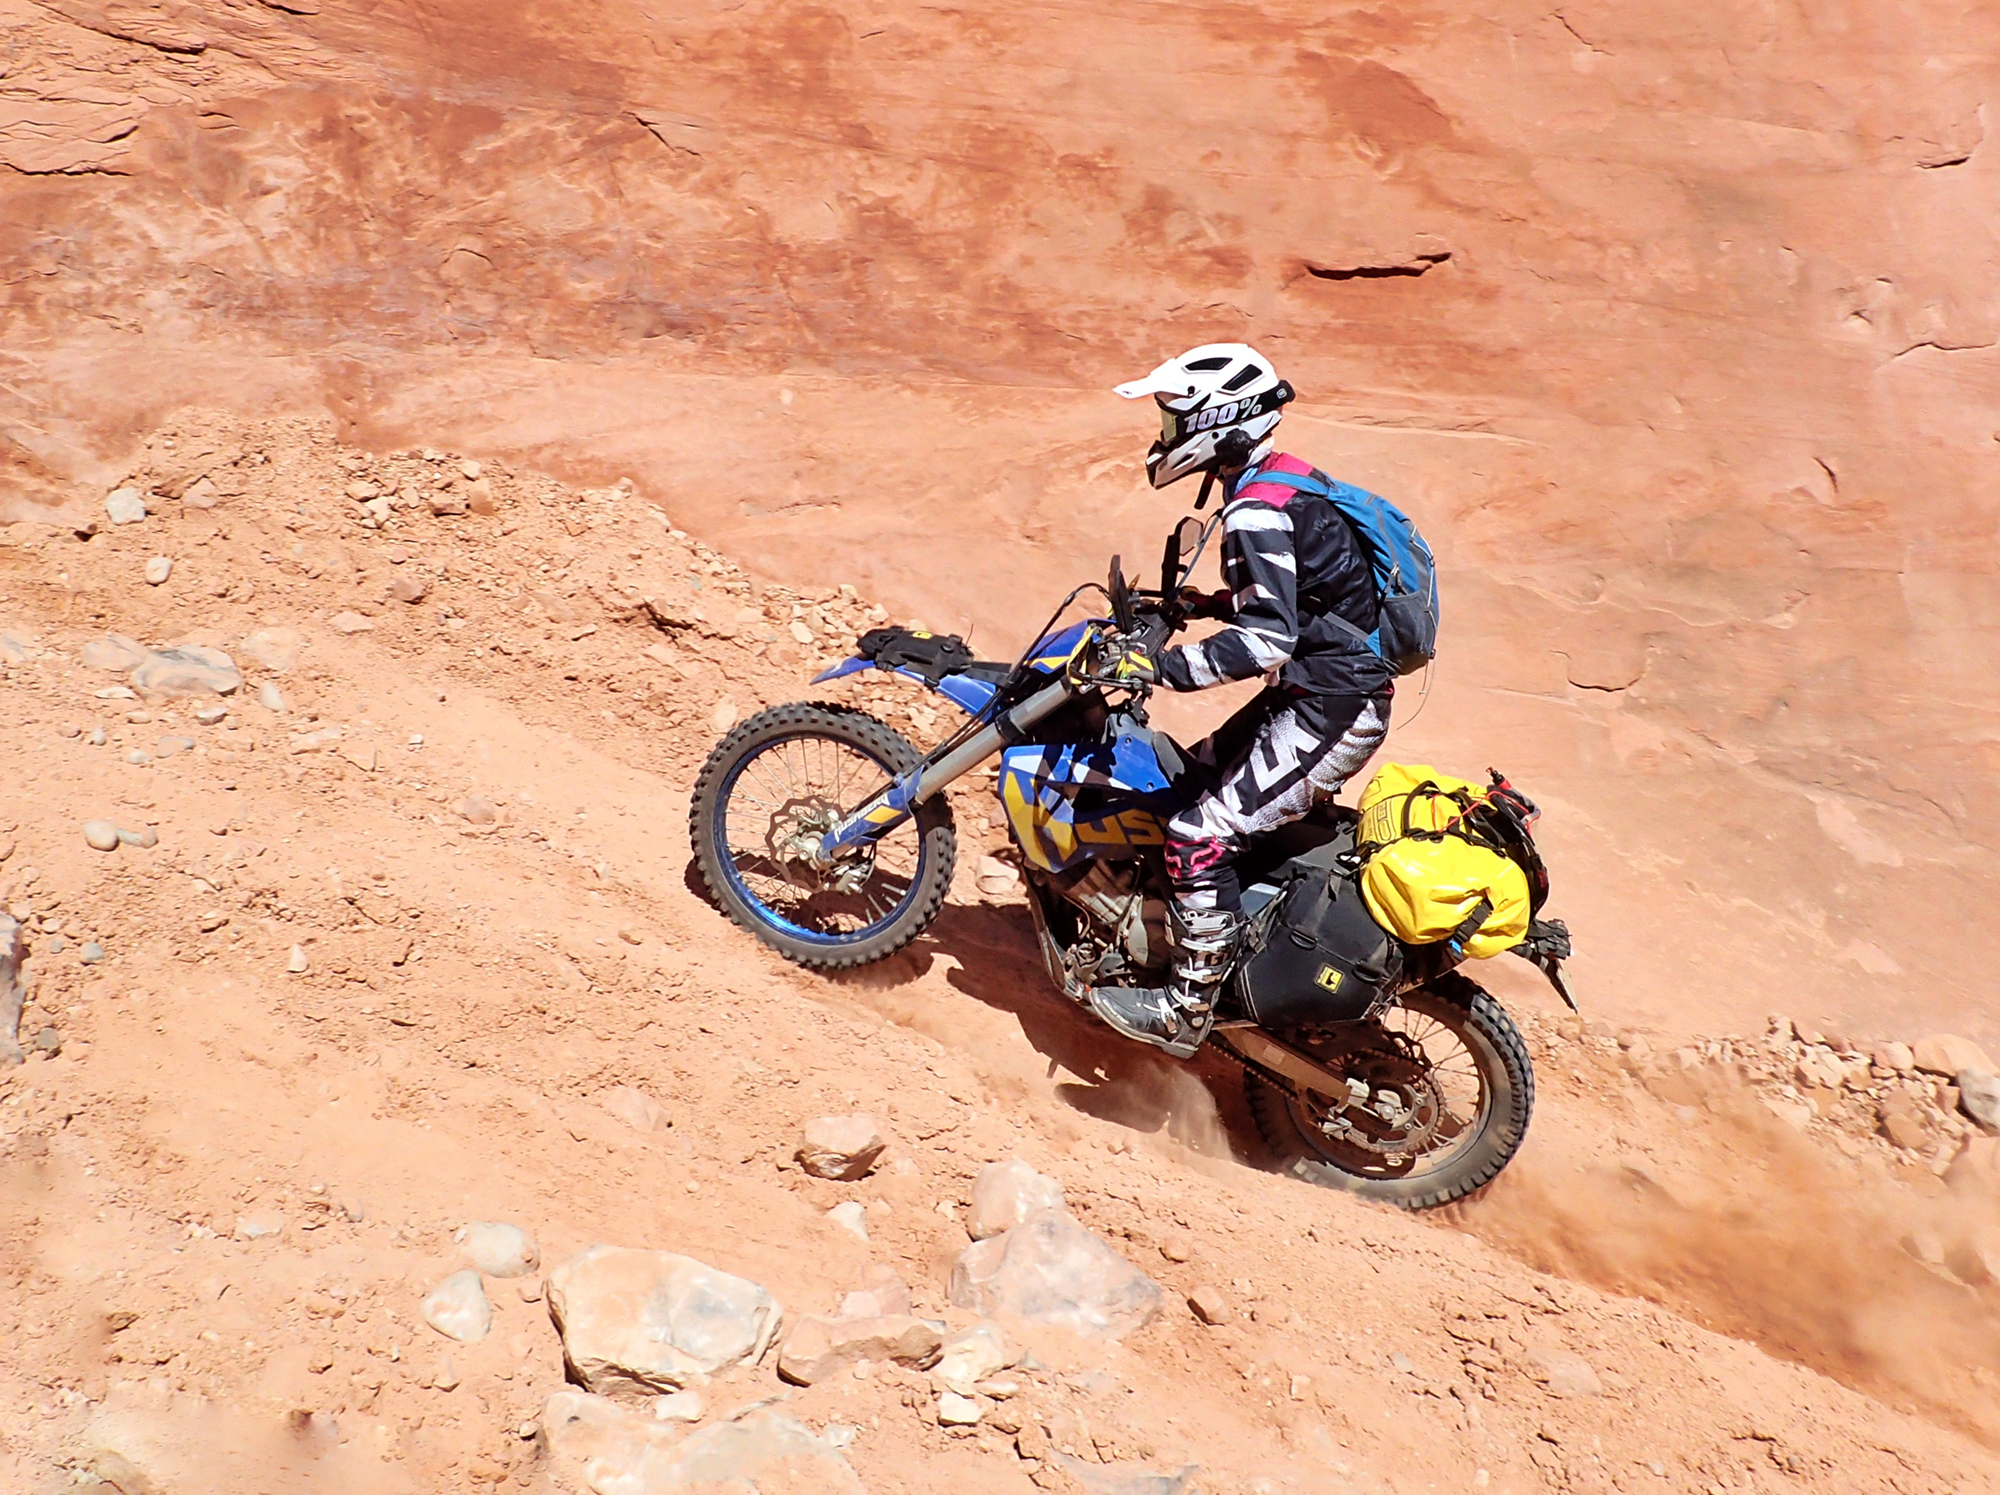 Scrambling up Jughandle Trail outside Moab, Utah on our way to ride the White Rim Trail.